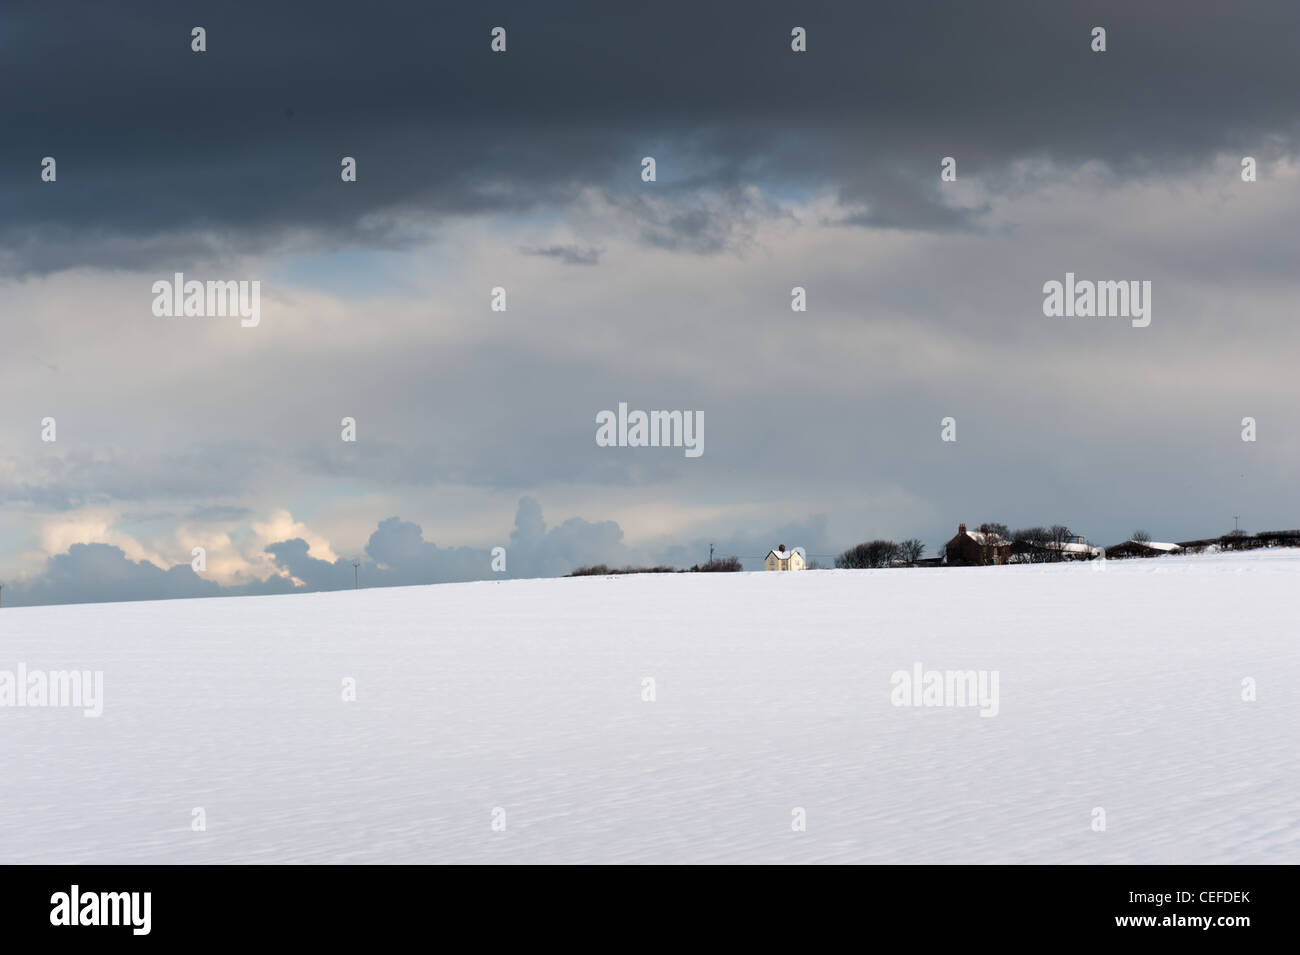 Snow fall over cottages; - Stock Image